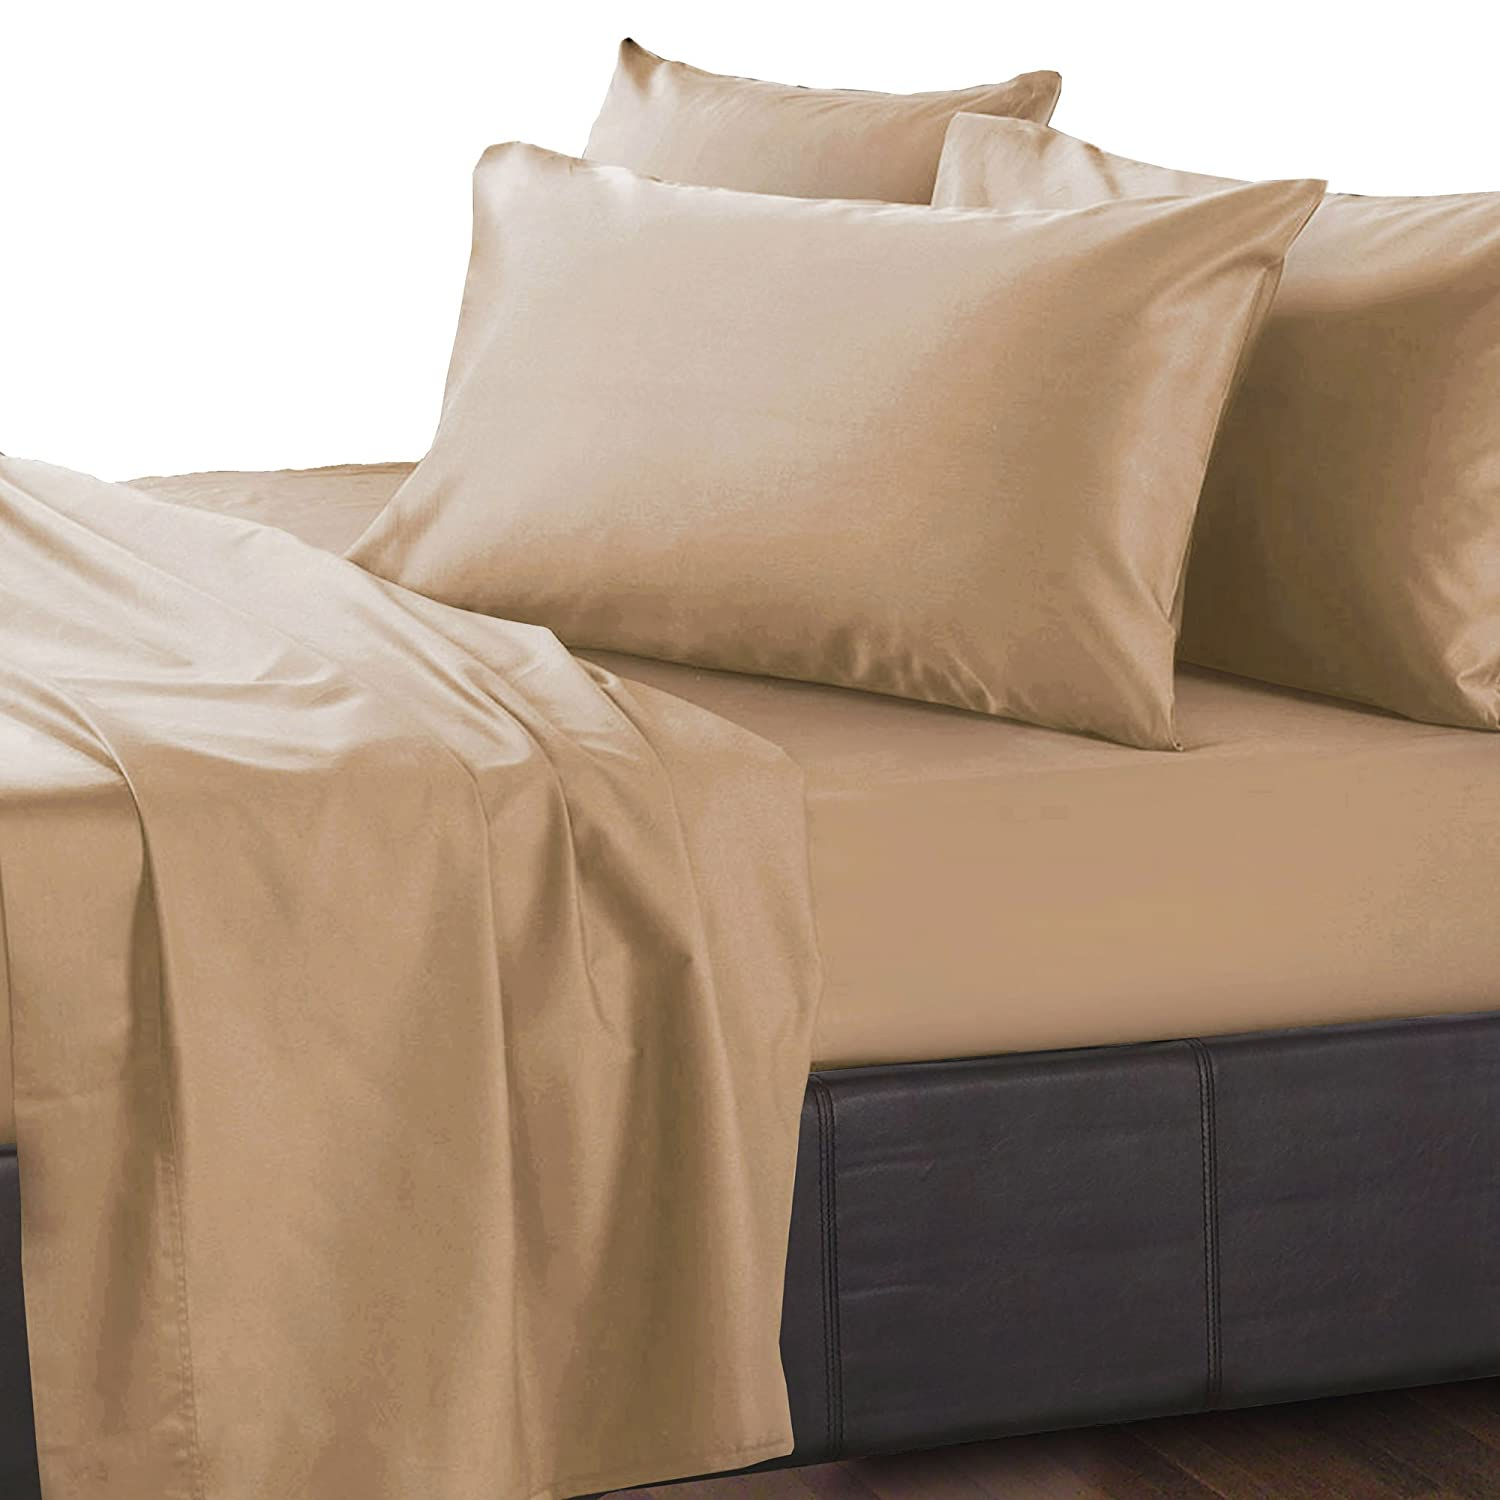 Gray Essina Queen Bed Sheet Set 4pc Royale Collection Solid Color Egyptian Cotton 950 Thread Count Deep Pocket Queen Sheet